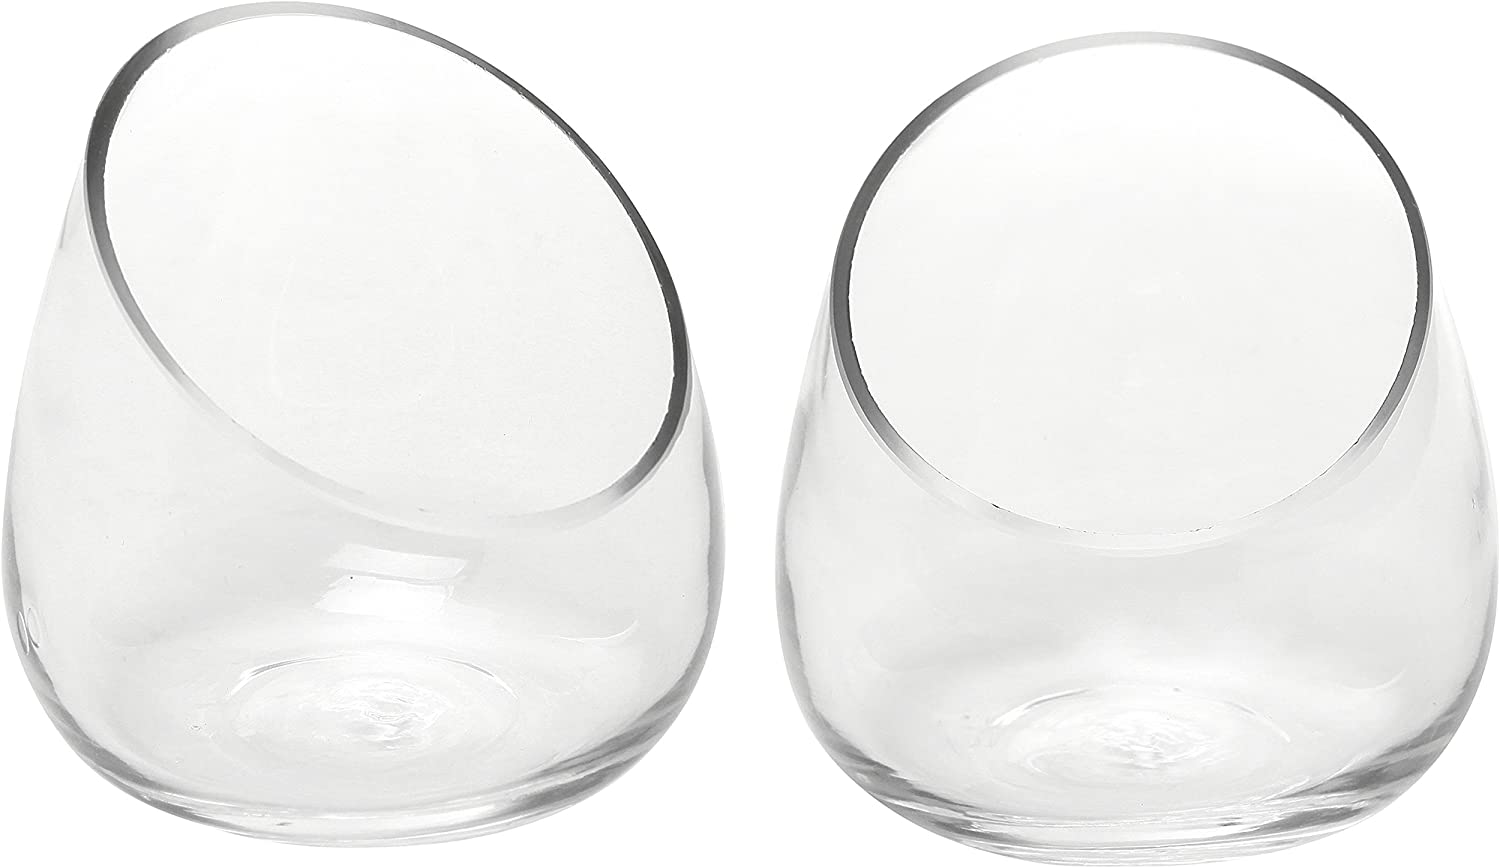 Set of 2 Modern Clear Glass Succulent Plant Vases/Small Candle Sconces/Decorative Storage Jars